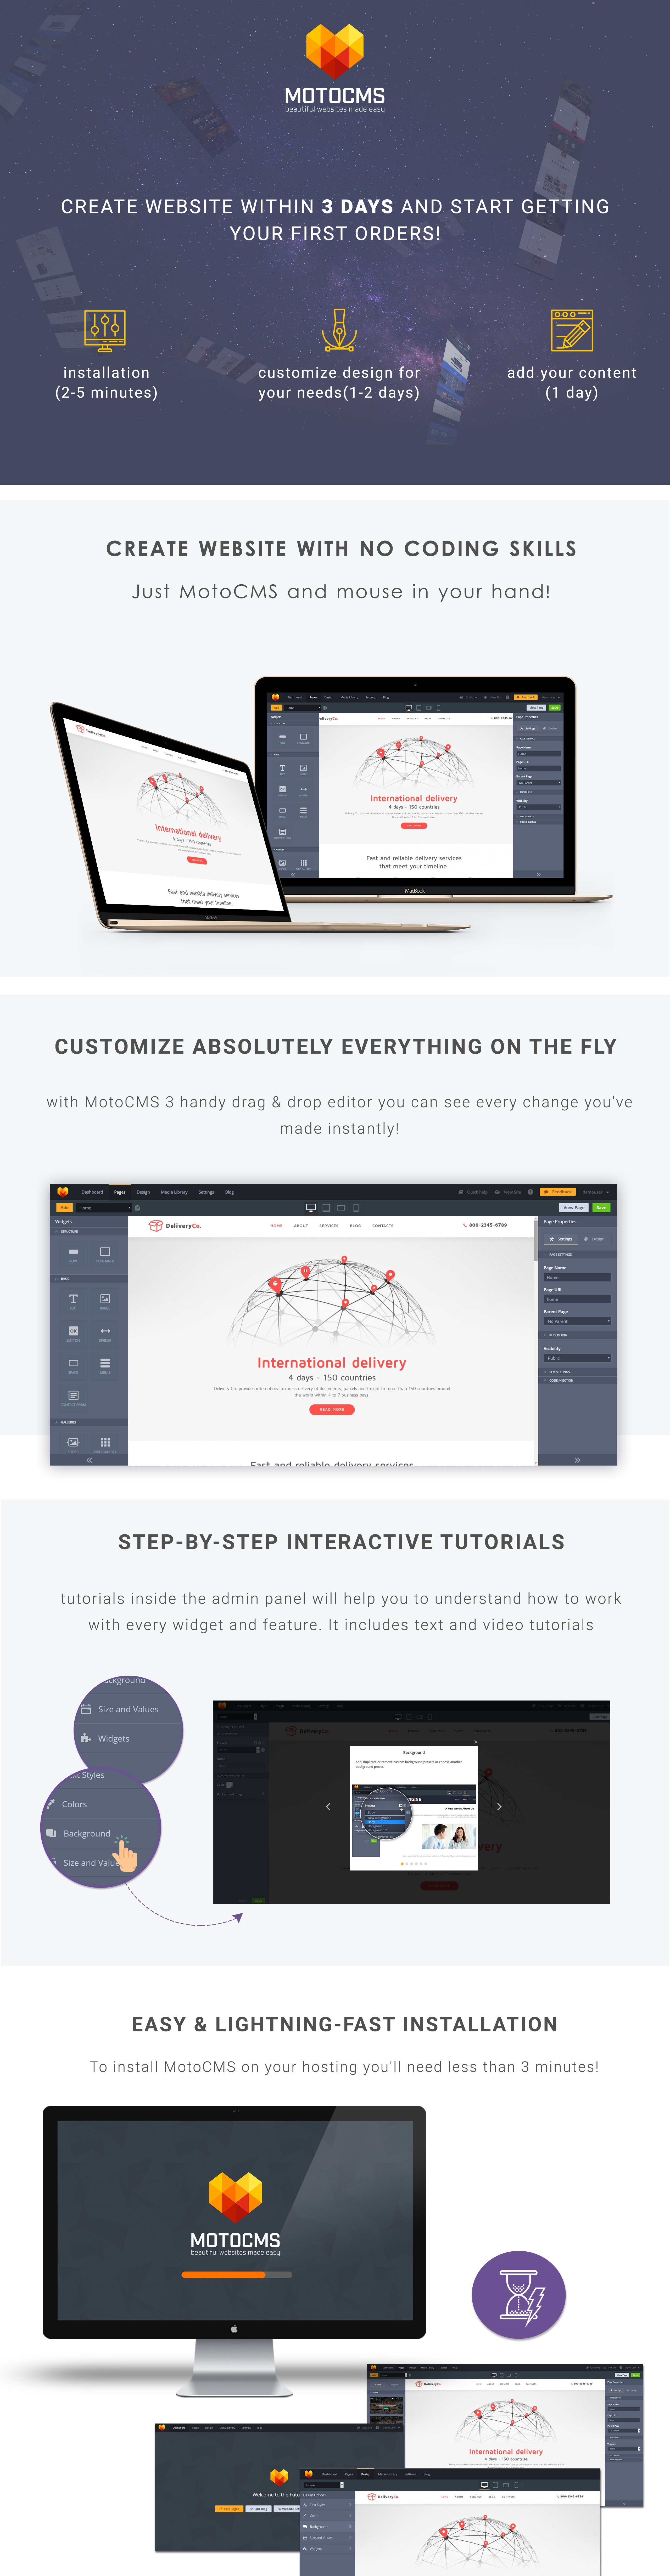 DeliveryCo - Parcel Delivery Moto CMS 3 Template